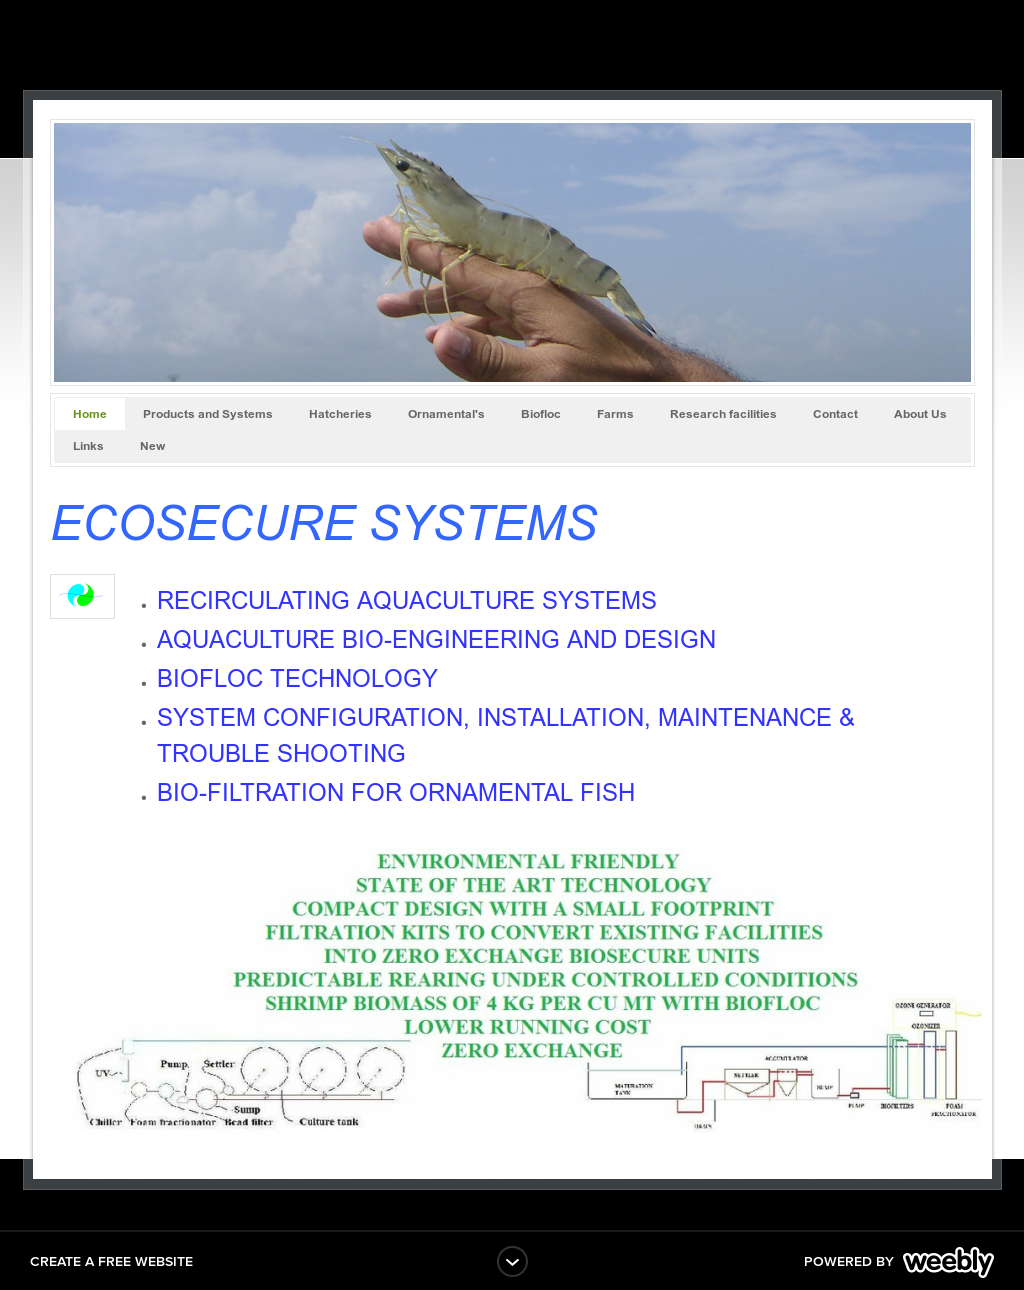 Ecosecure Systems Competitors, Revenue and Employees - Owler Company